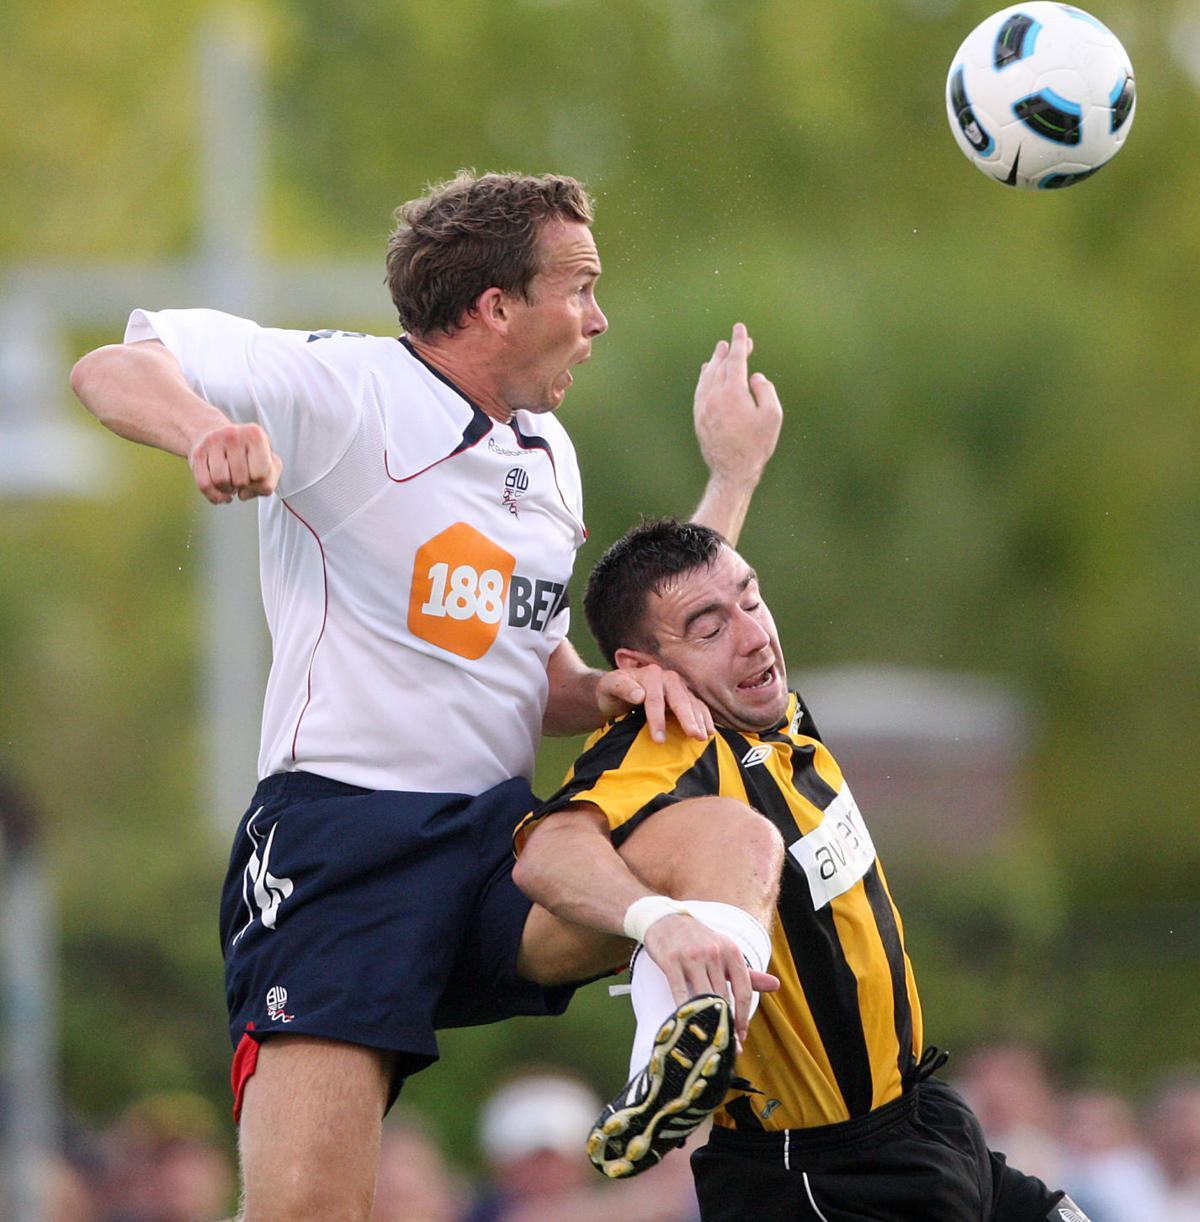 EPL's West Bromwich Albion Football Club to face Charleston Battery